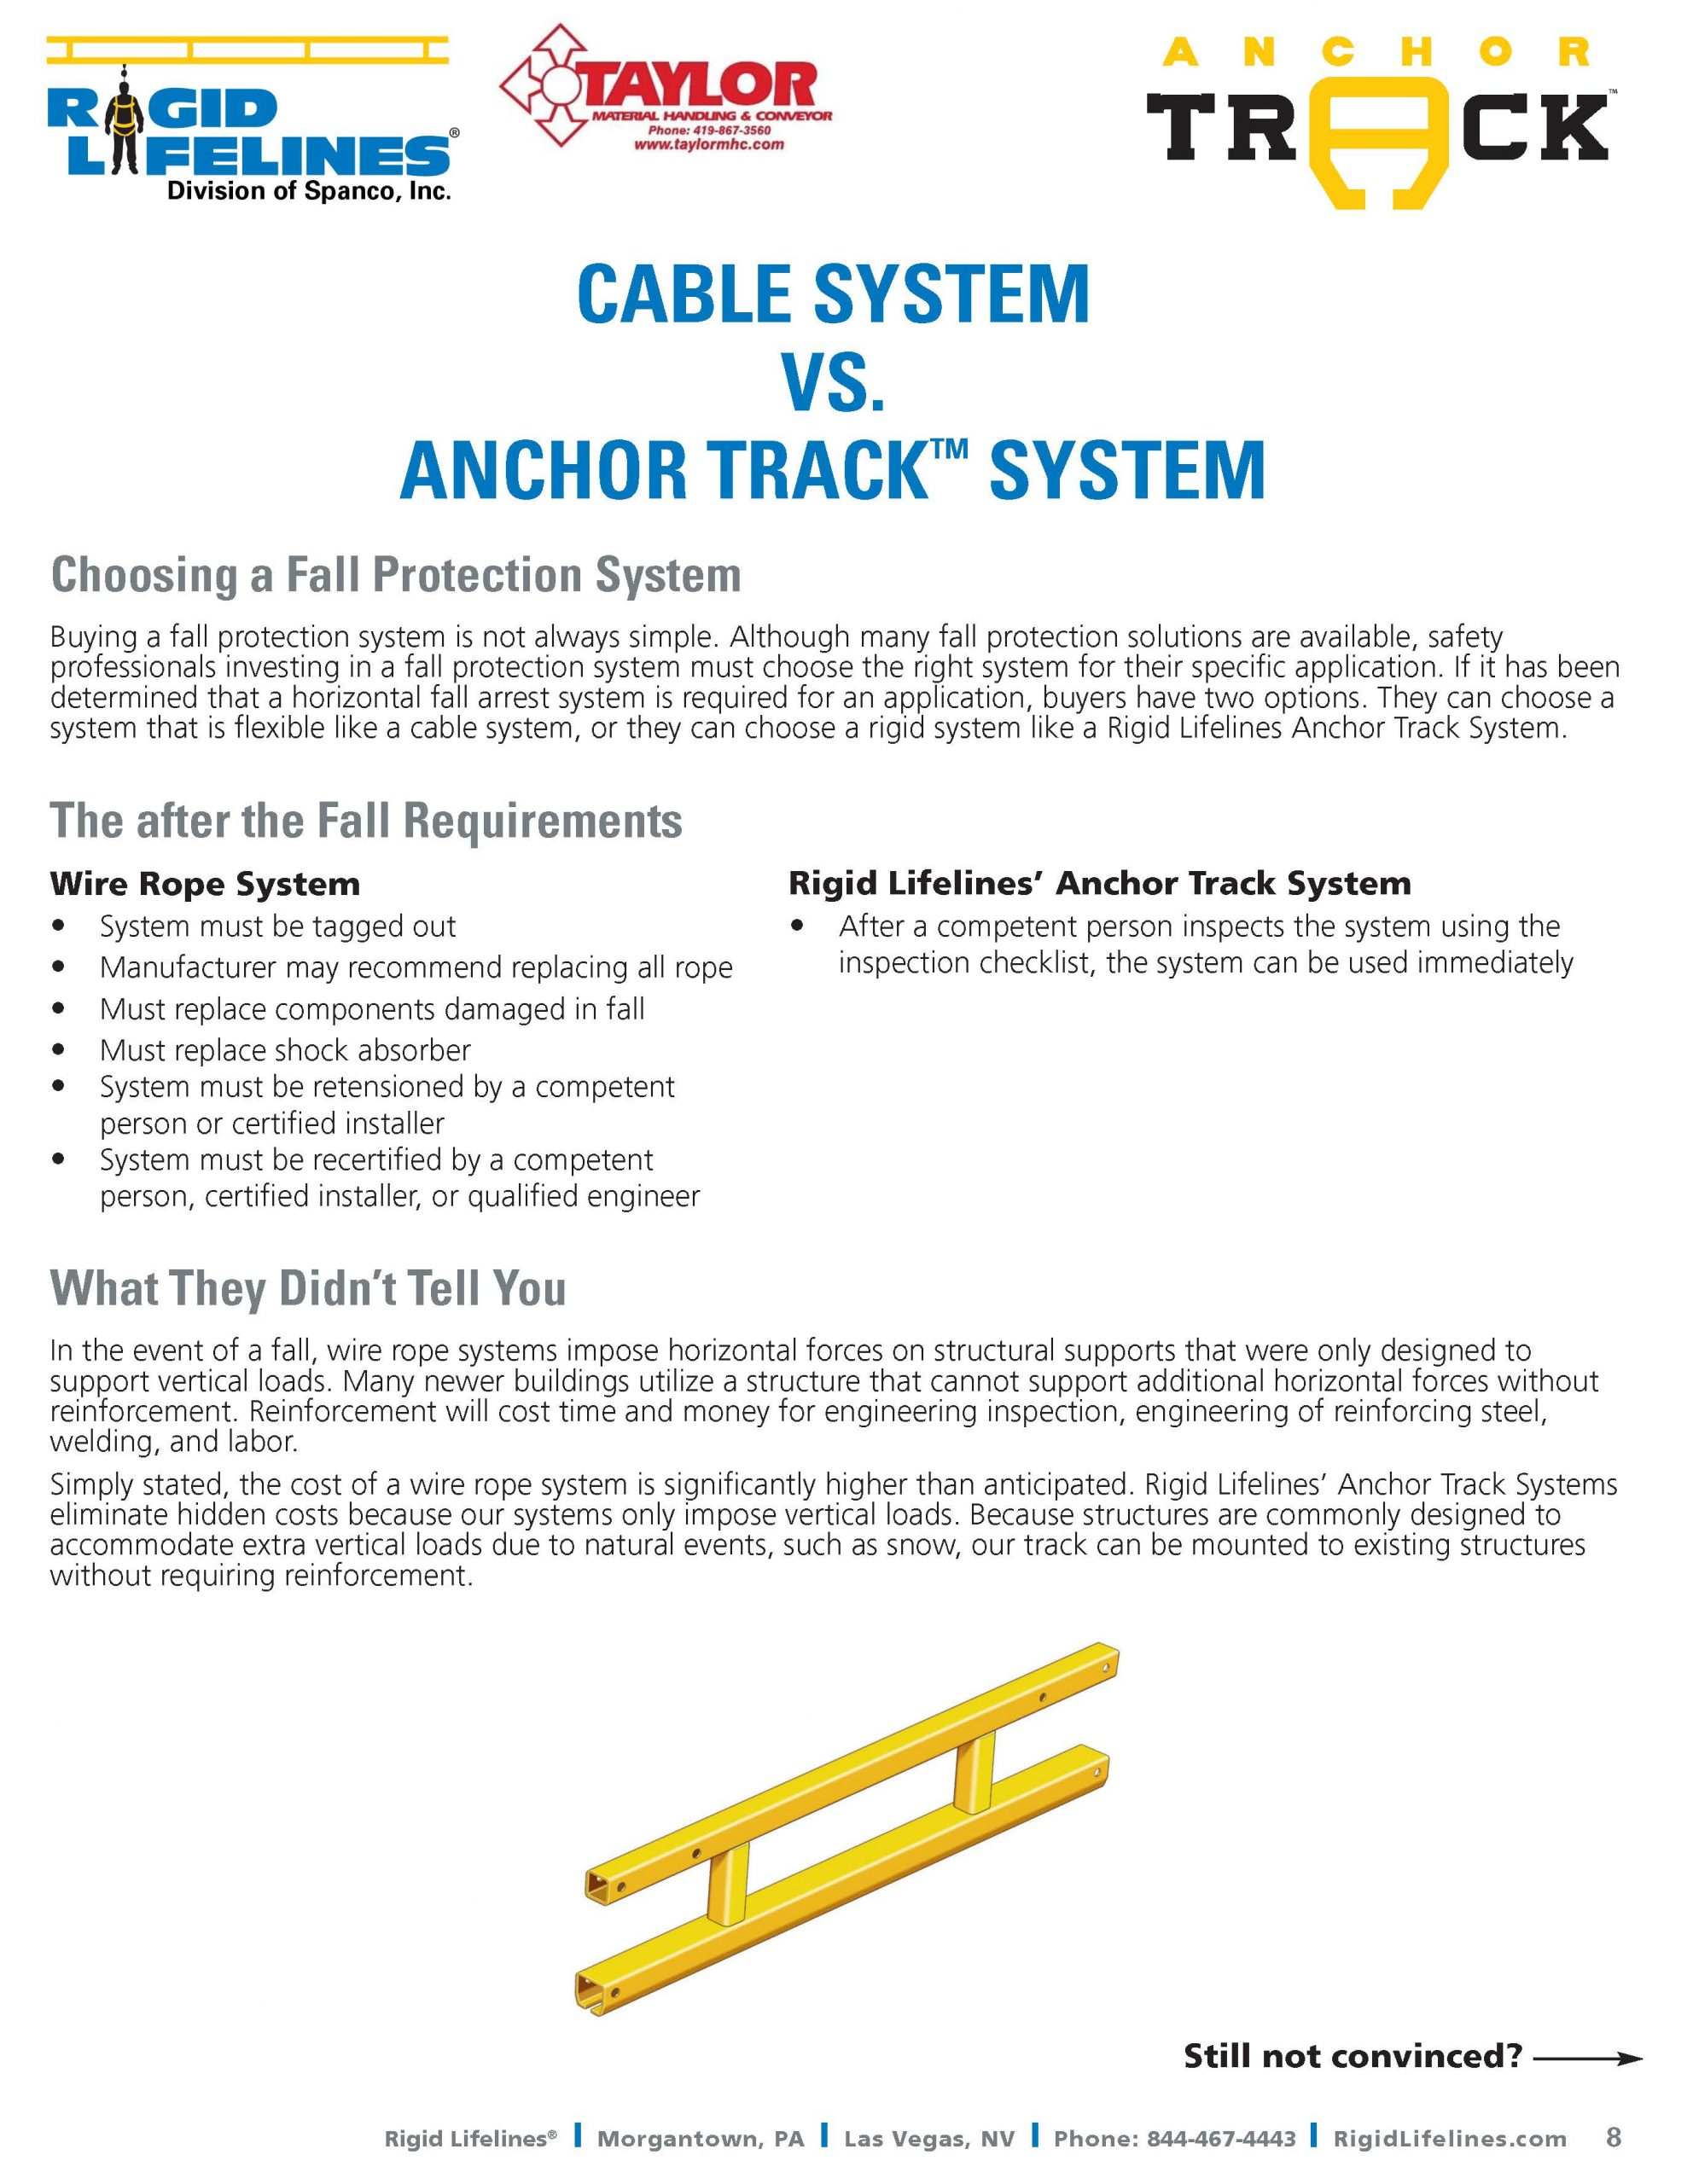 Spanco Cable VS. Track Flyer